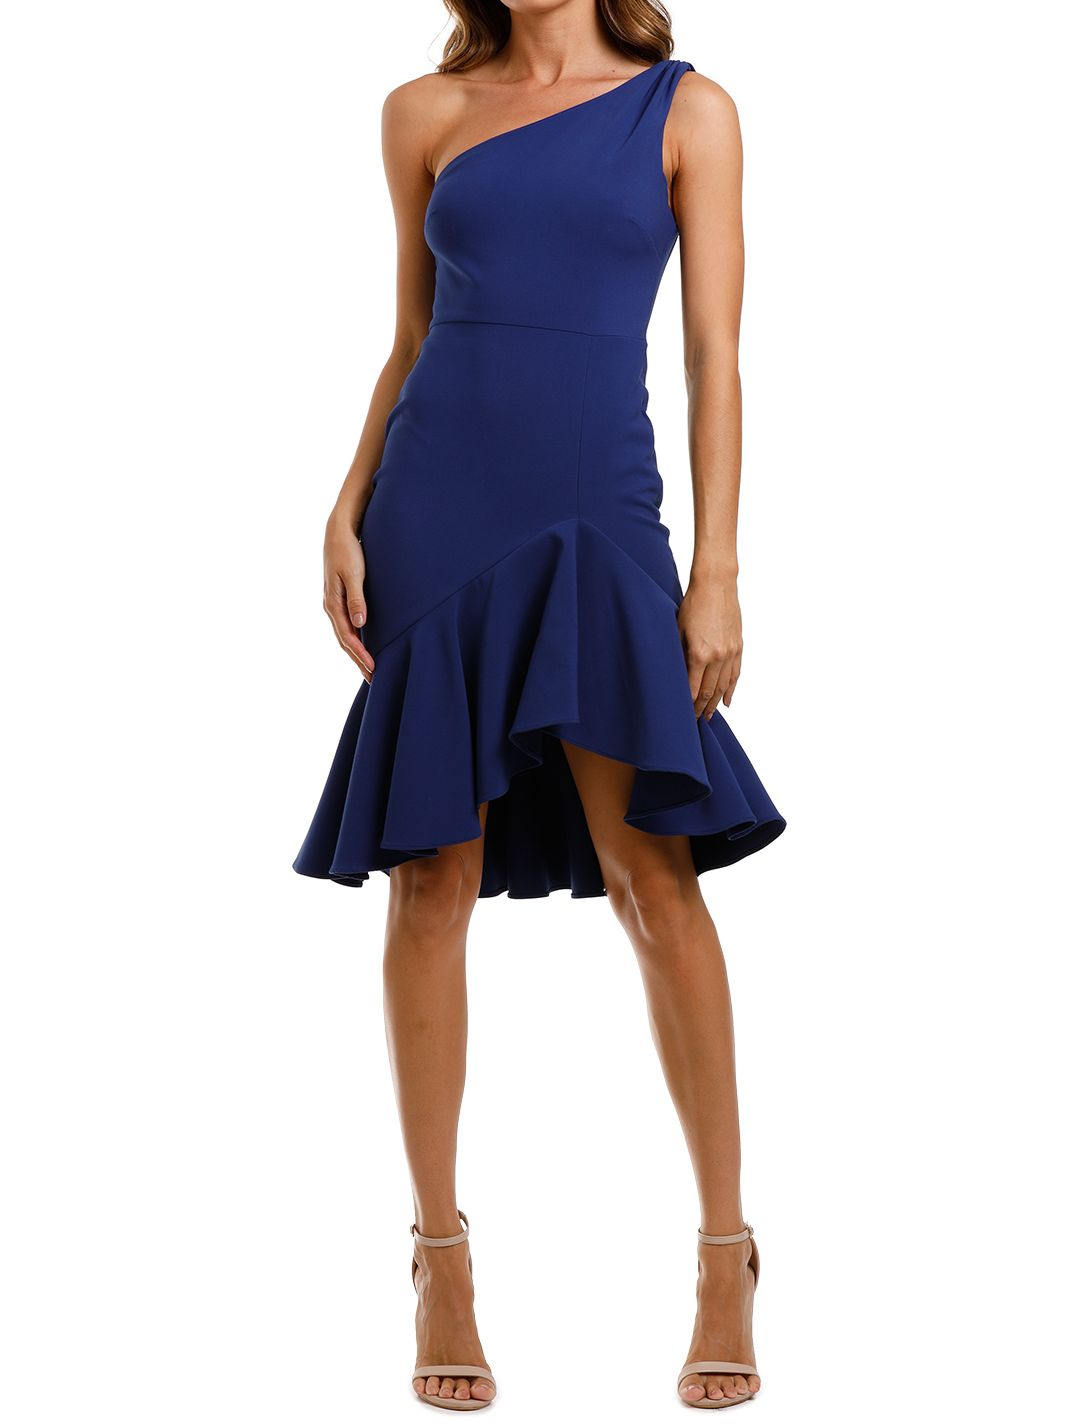 Likely NYC Rollins Dress Blue